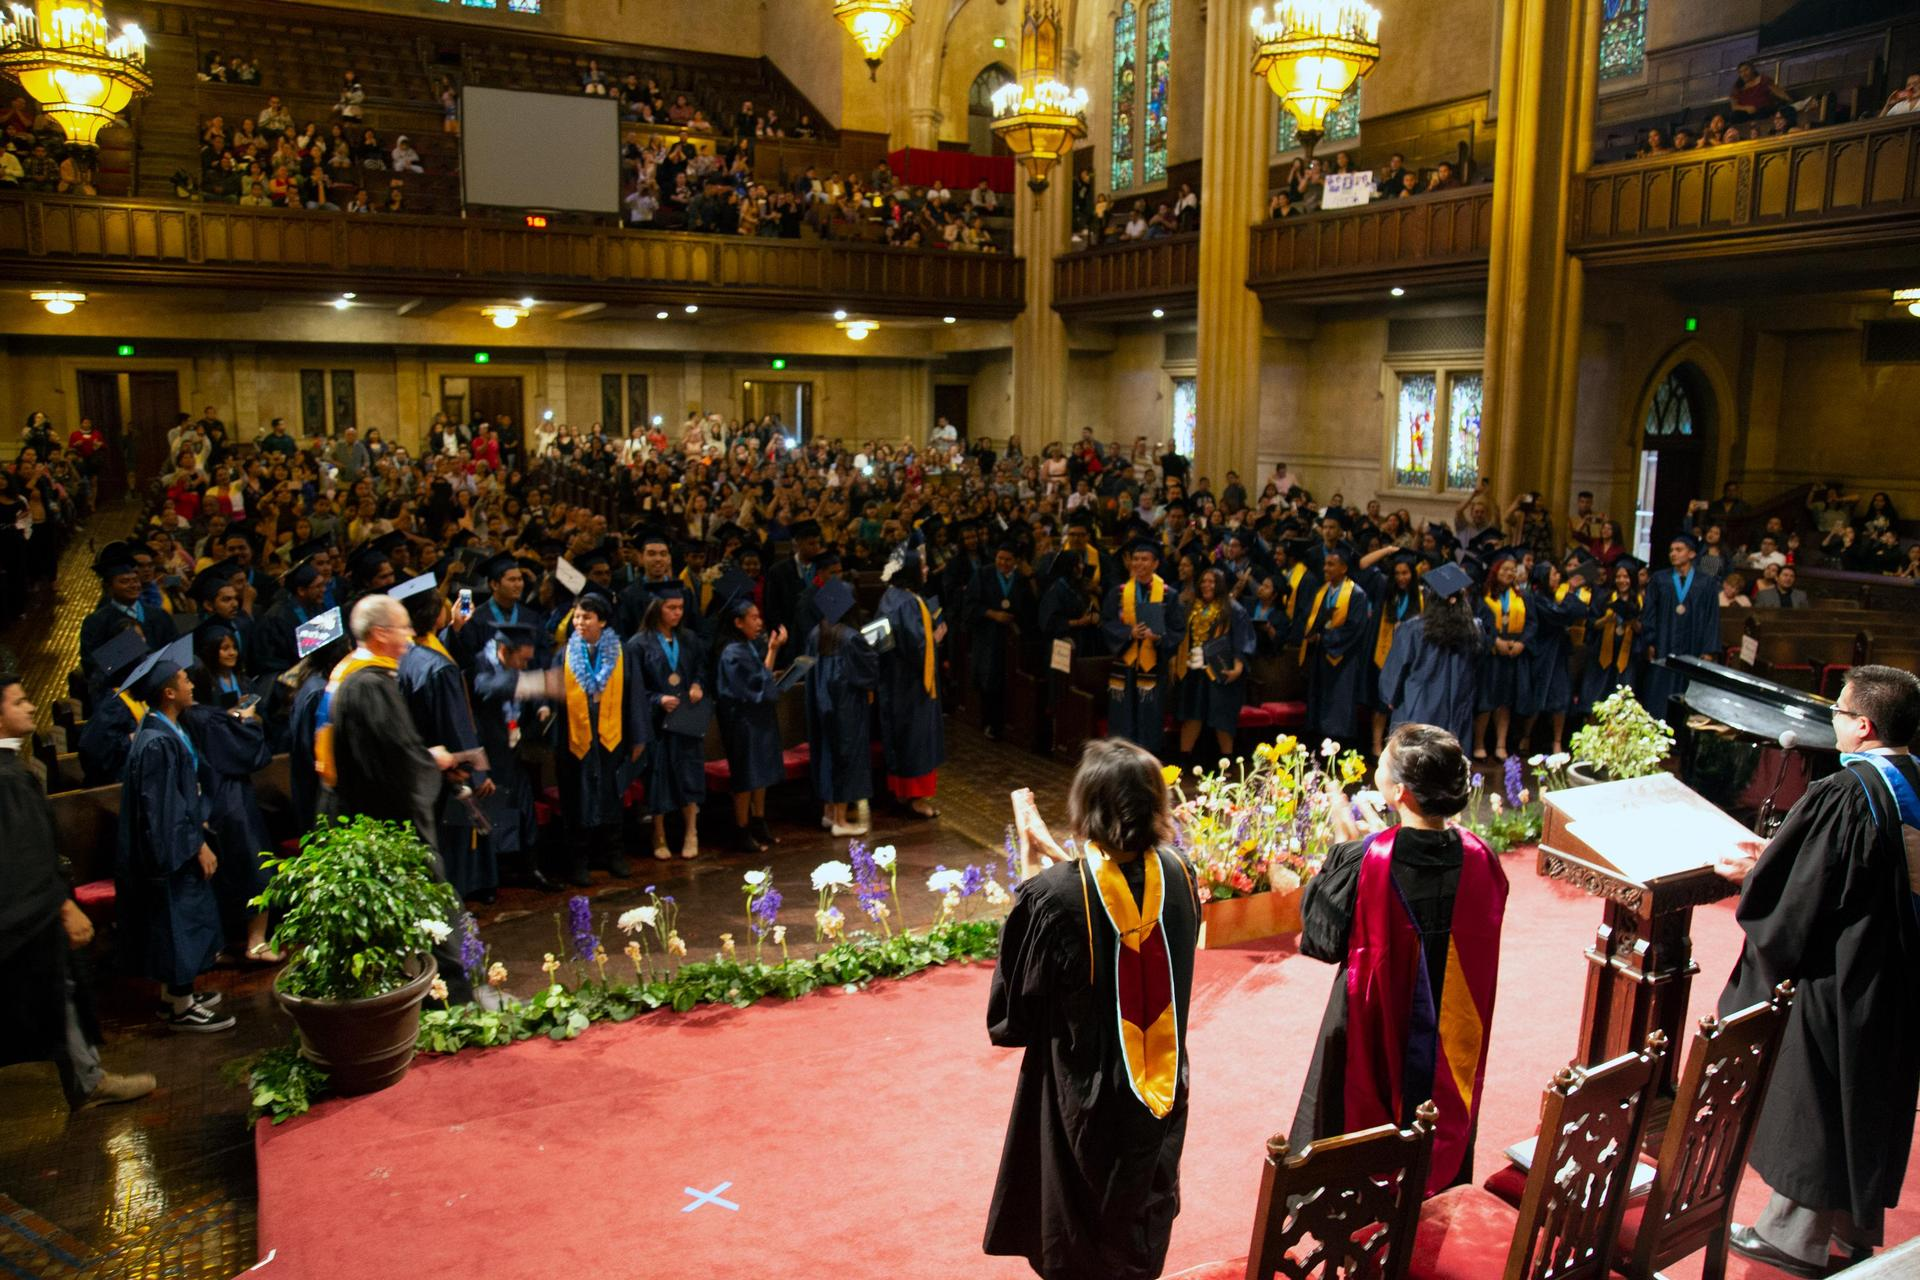 An overview of the graduation class celebration